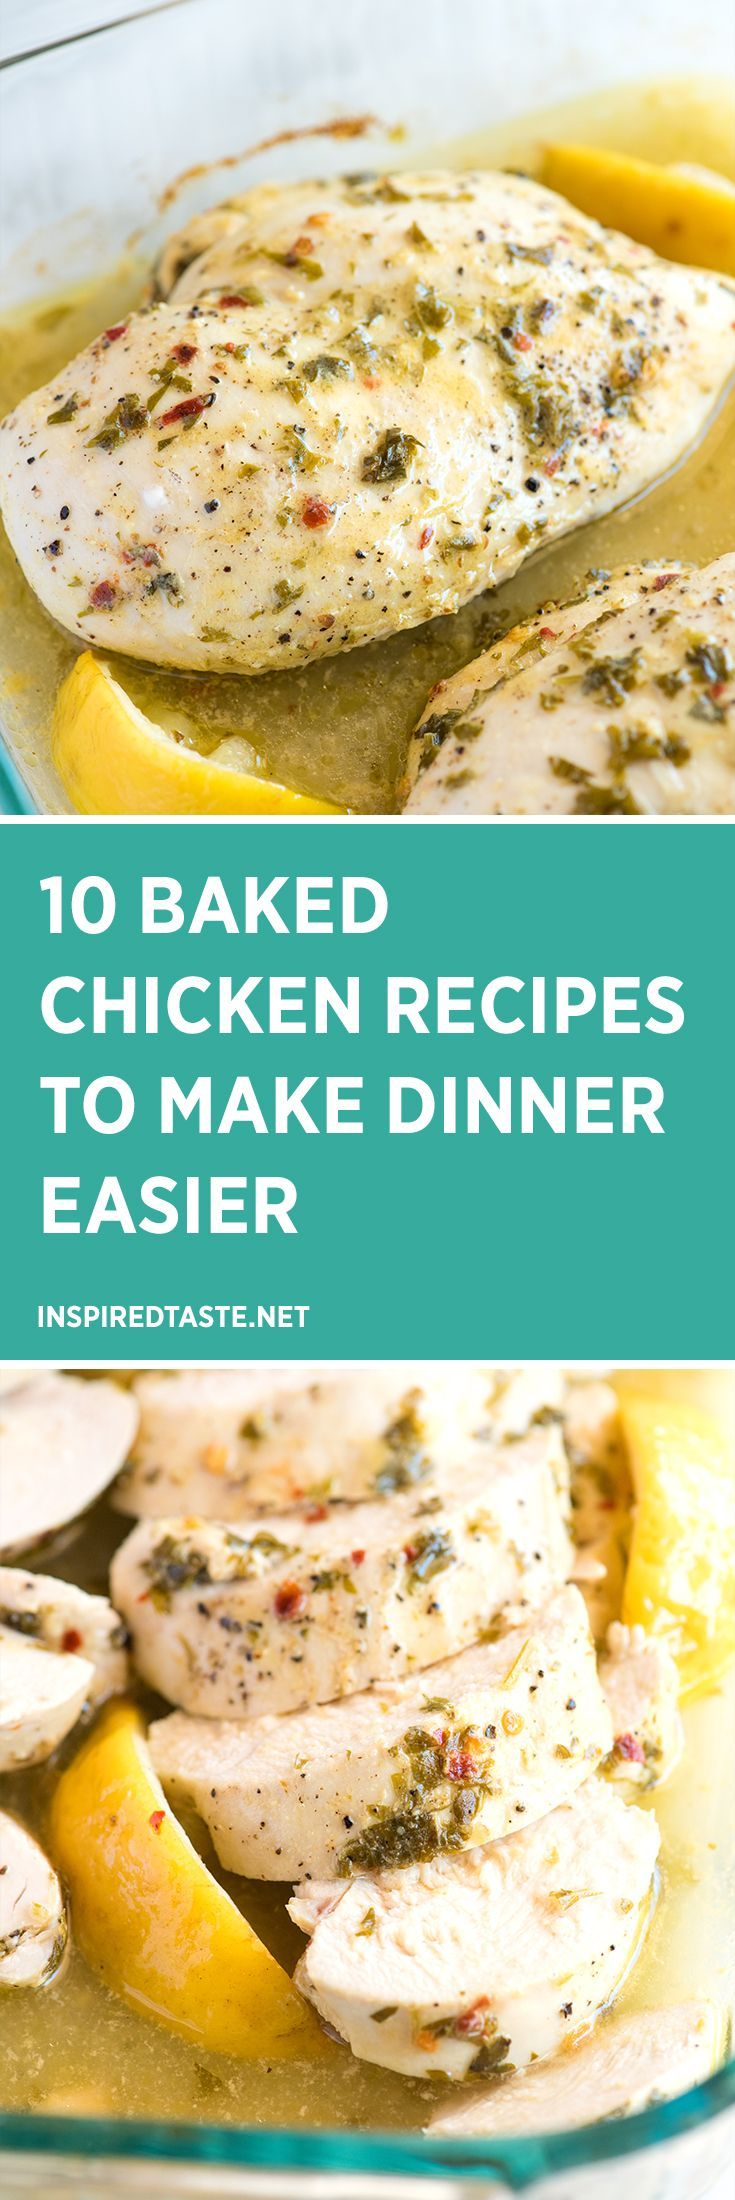 349 best Easy Chicken recipes images on Pinterest | Chicken, Clean ...